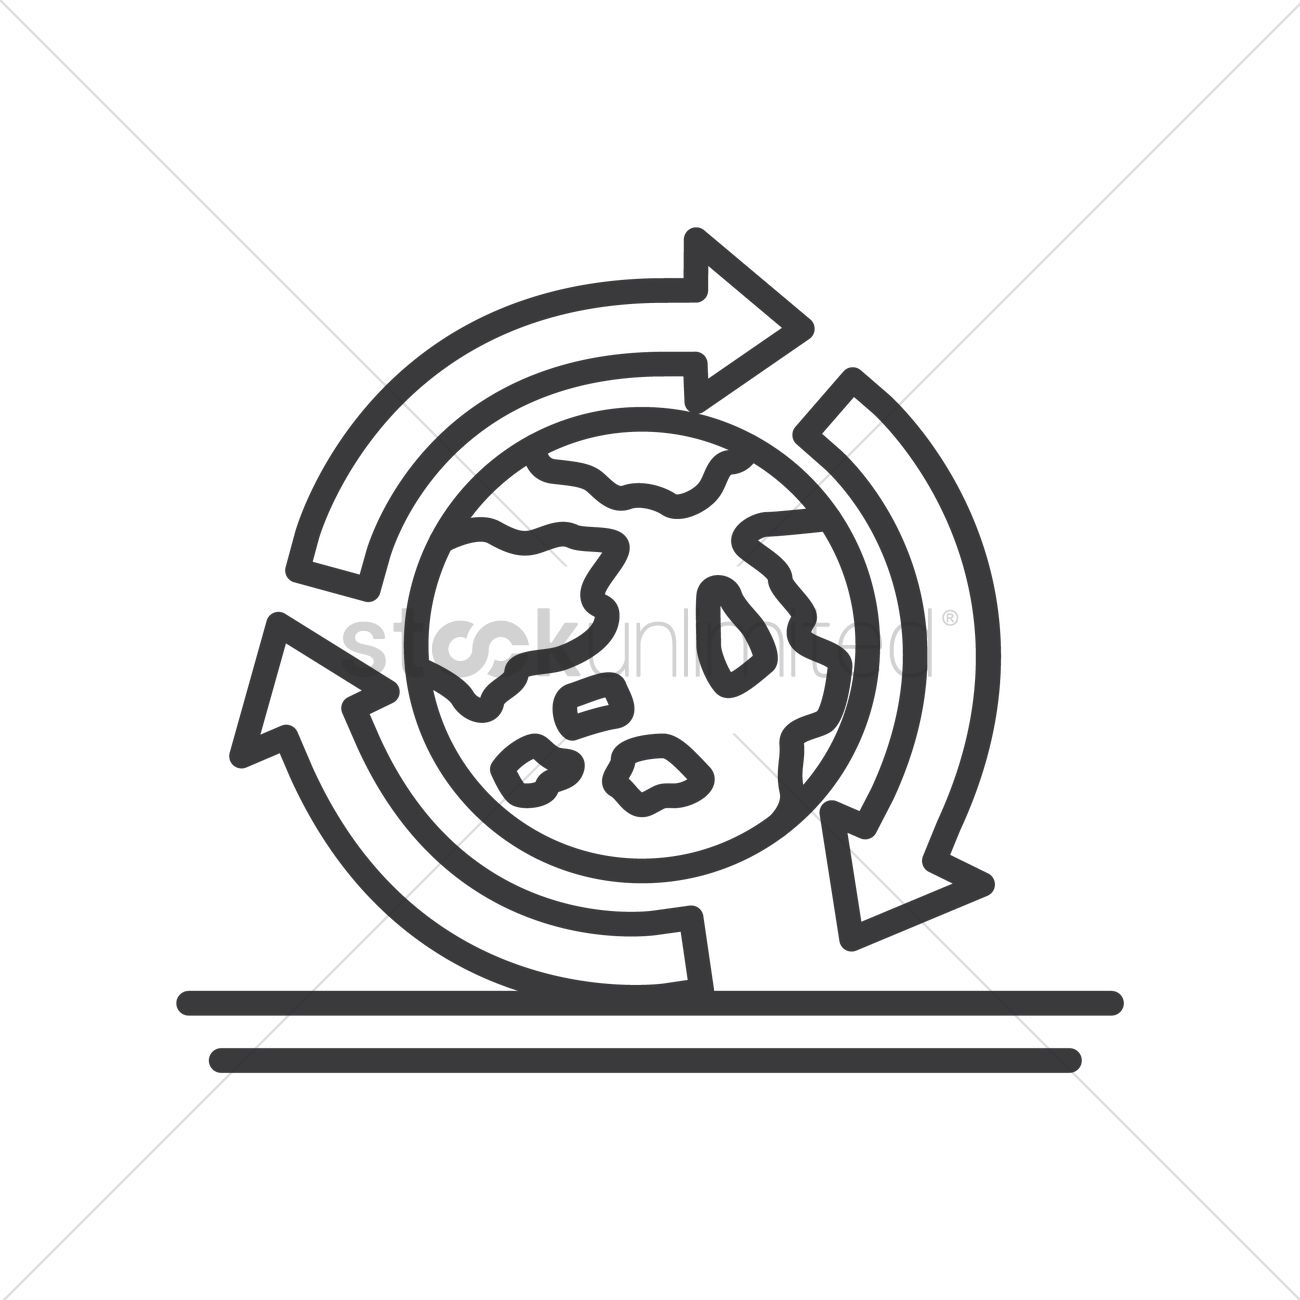 Recycle Earth Symbol Vector Image 1975684 Stockunlimited